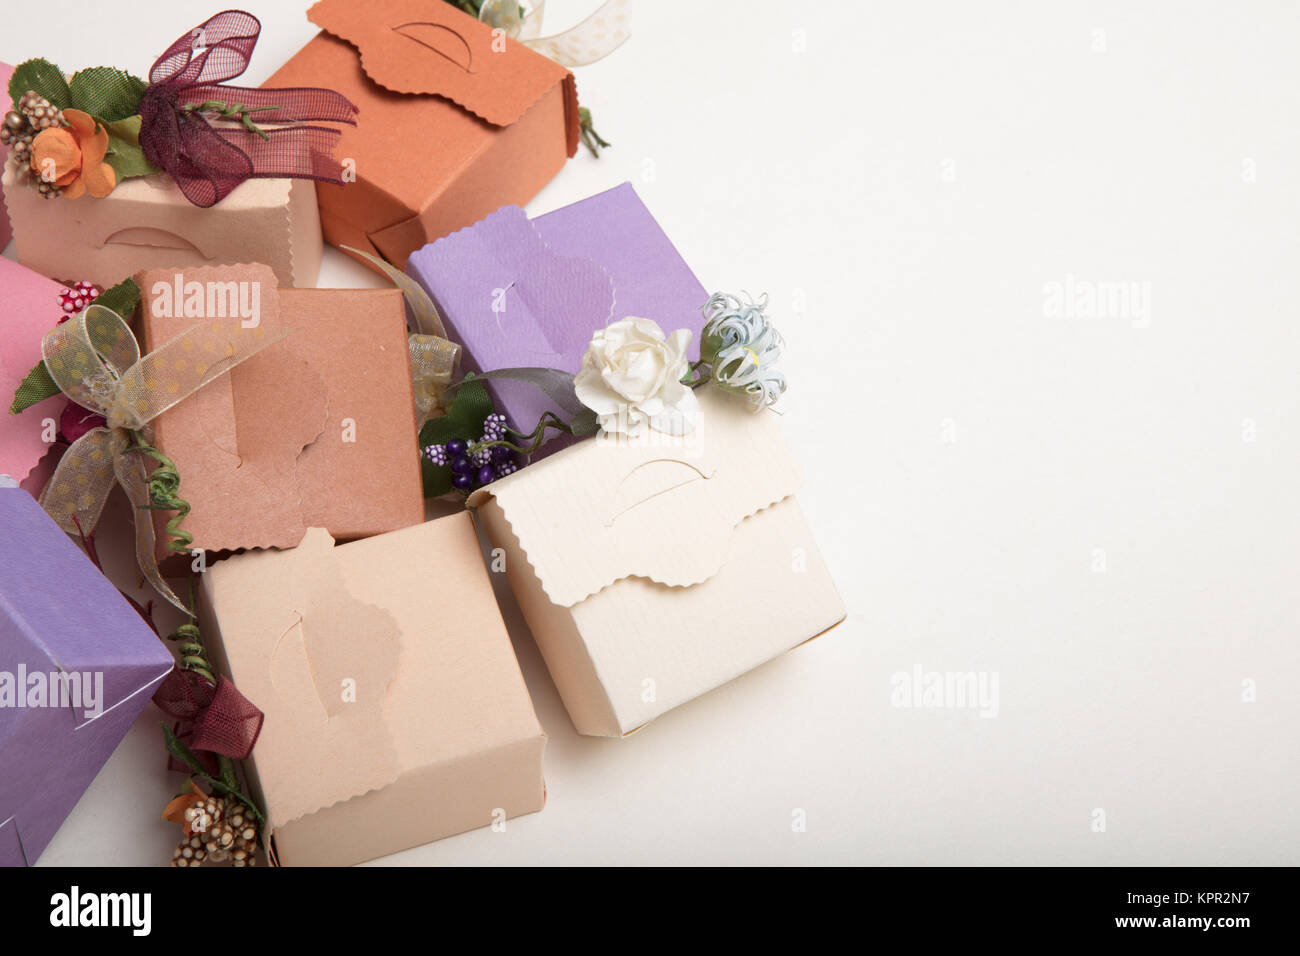 Fancy  carton wedding or  gift boxes with ribbon and flowers with copy spaces , high quality image - Stock Image